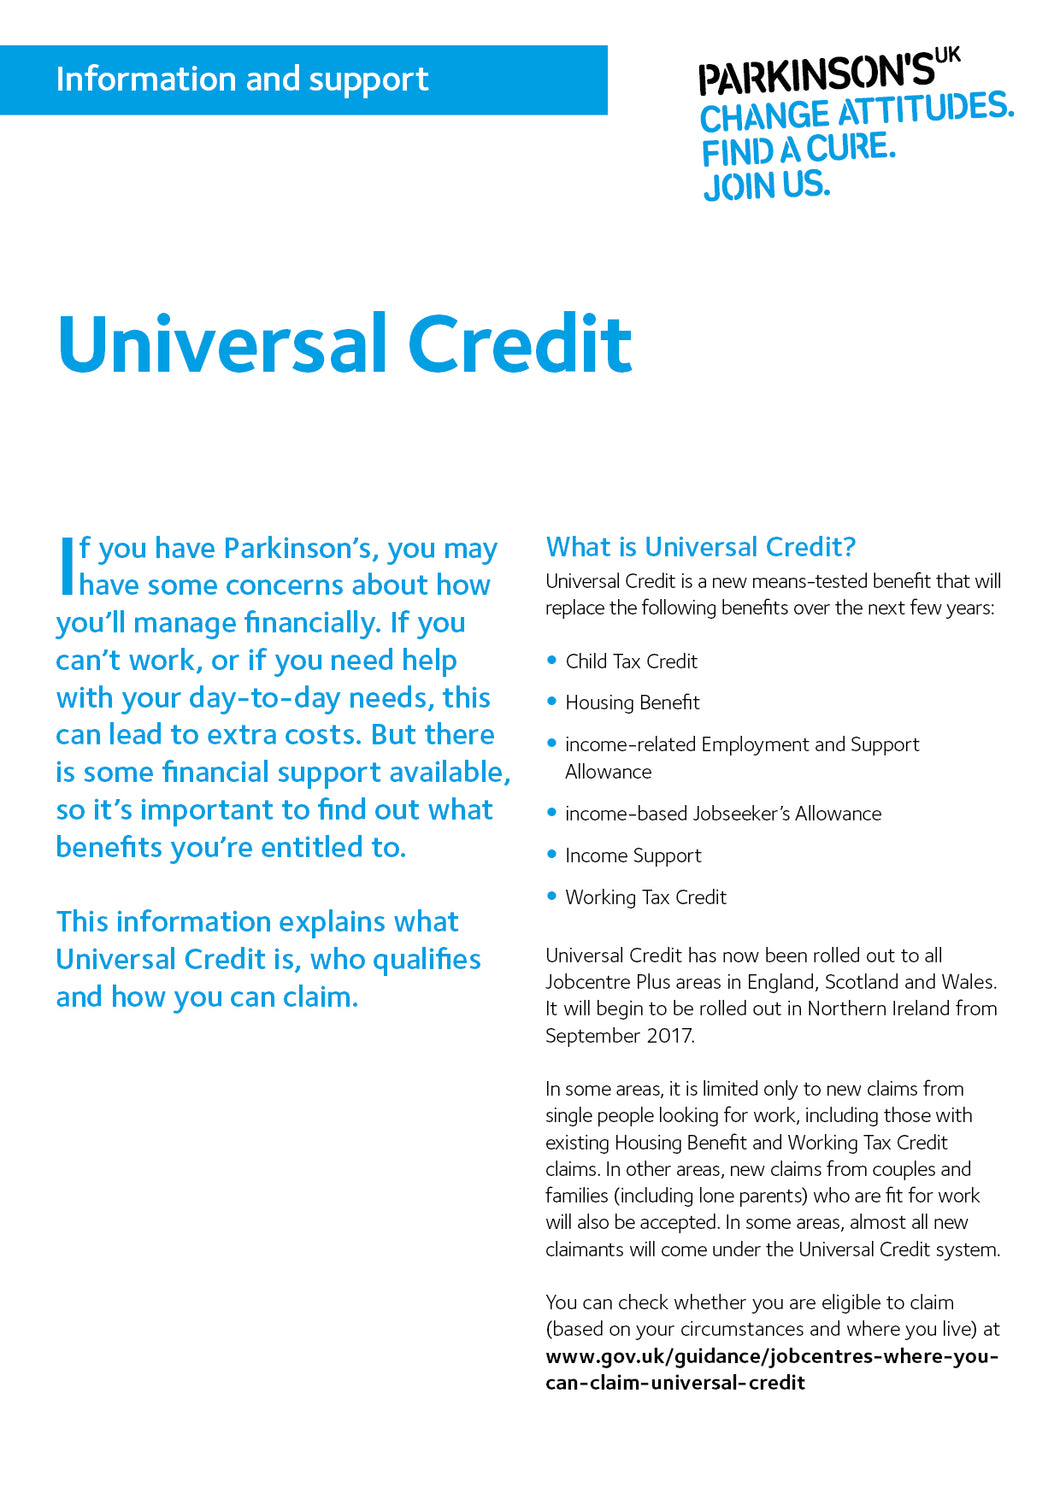 Universal Credit - Parkinson's shop